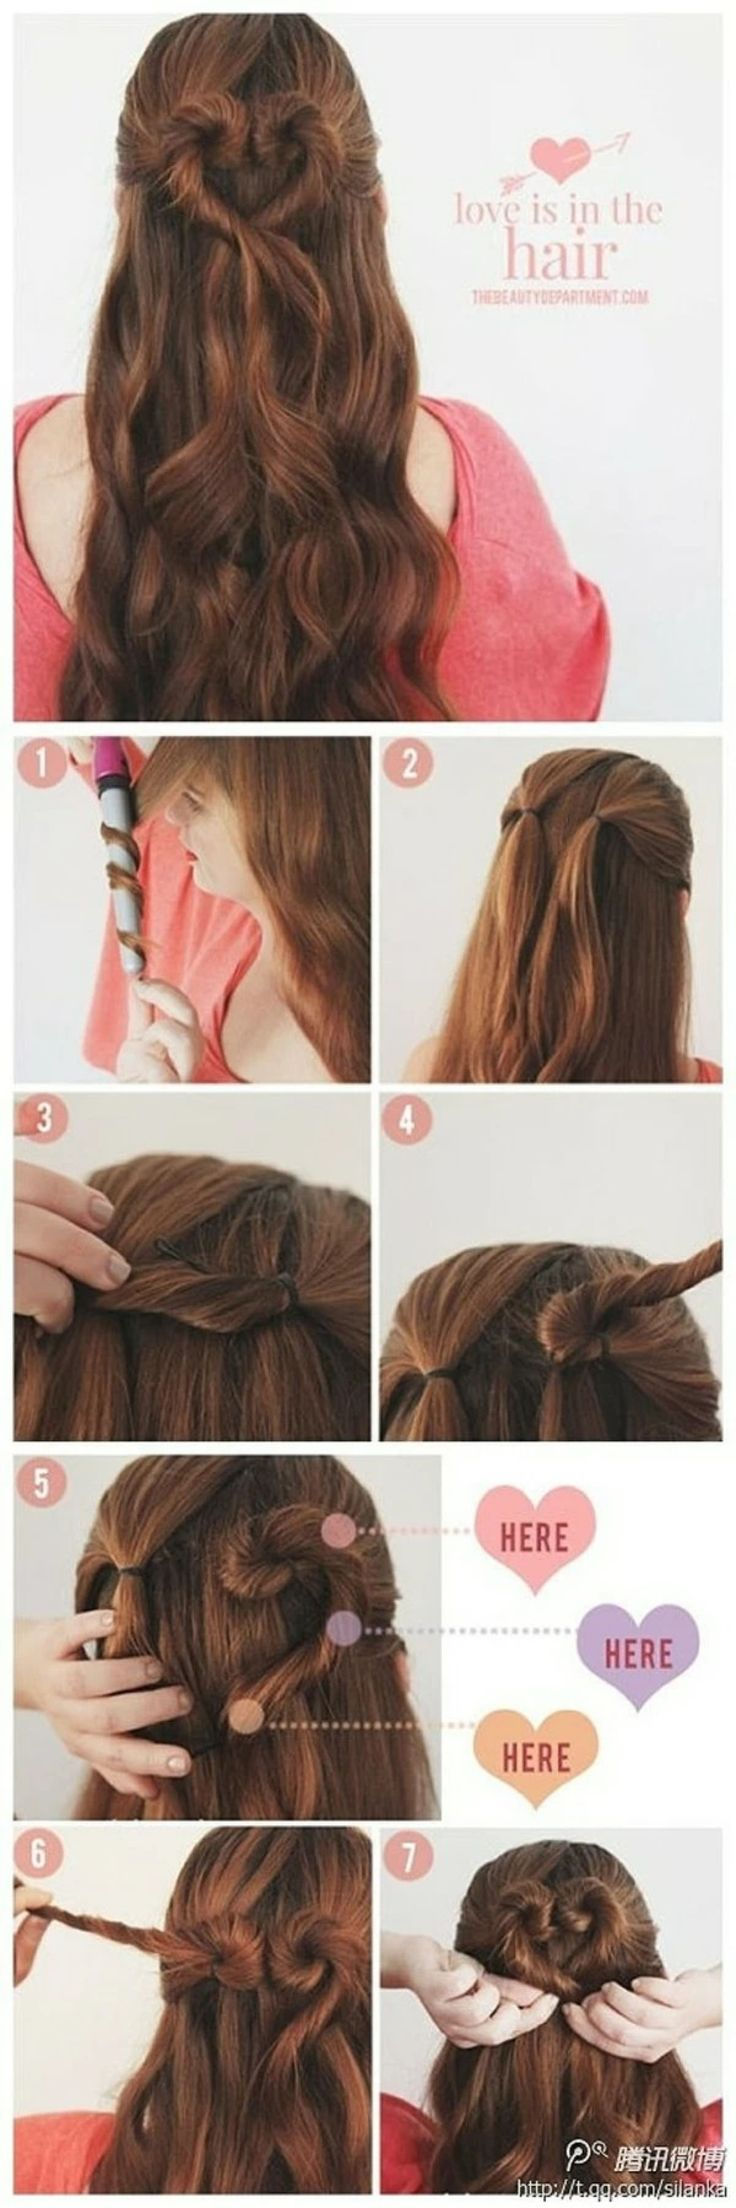 best hair stuff images on pinterest hair ideas hairstyle ideas